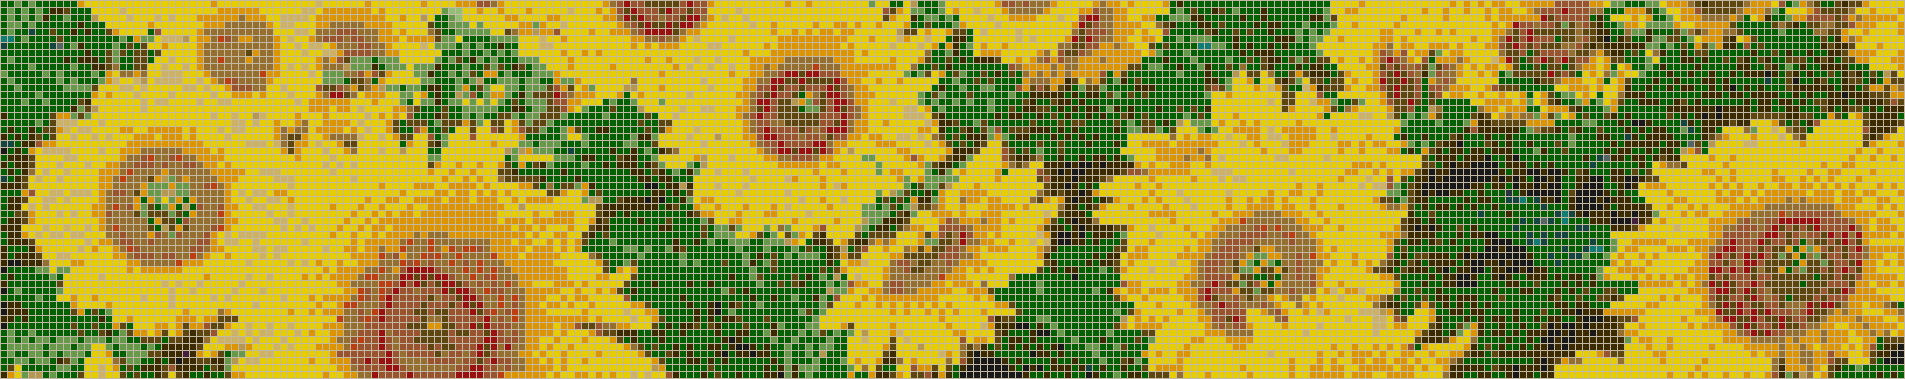 Sunflowers - Mosaic Tile Picture Art